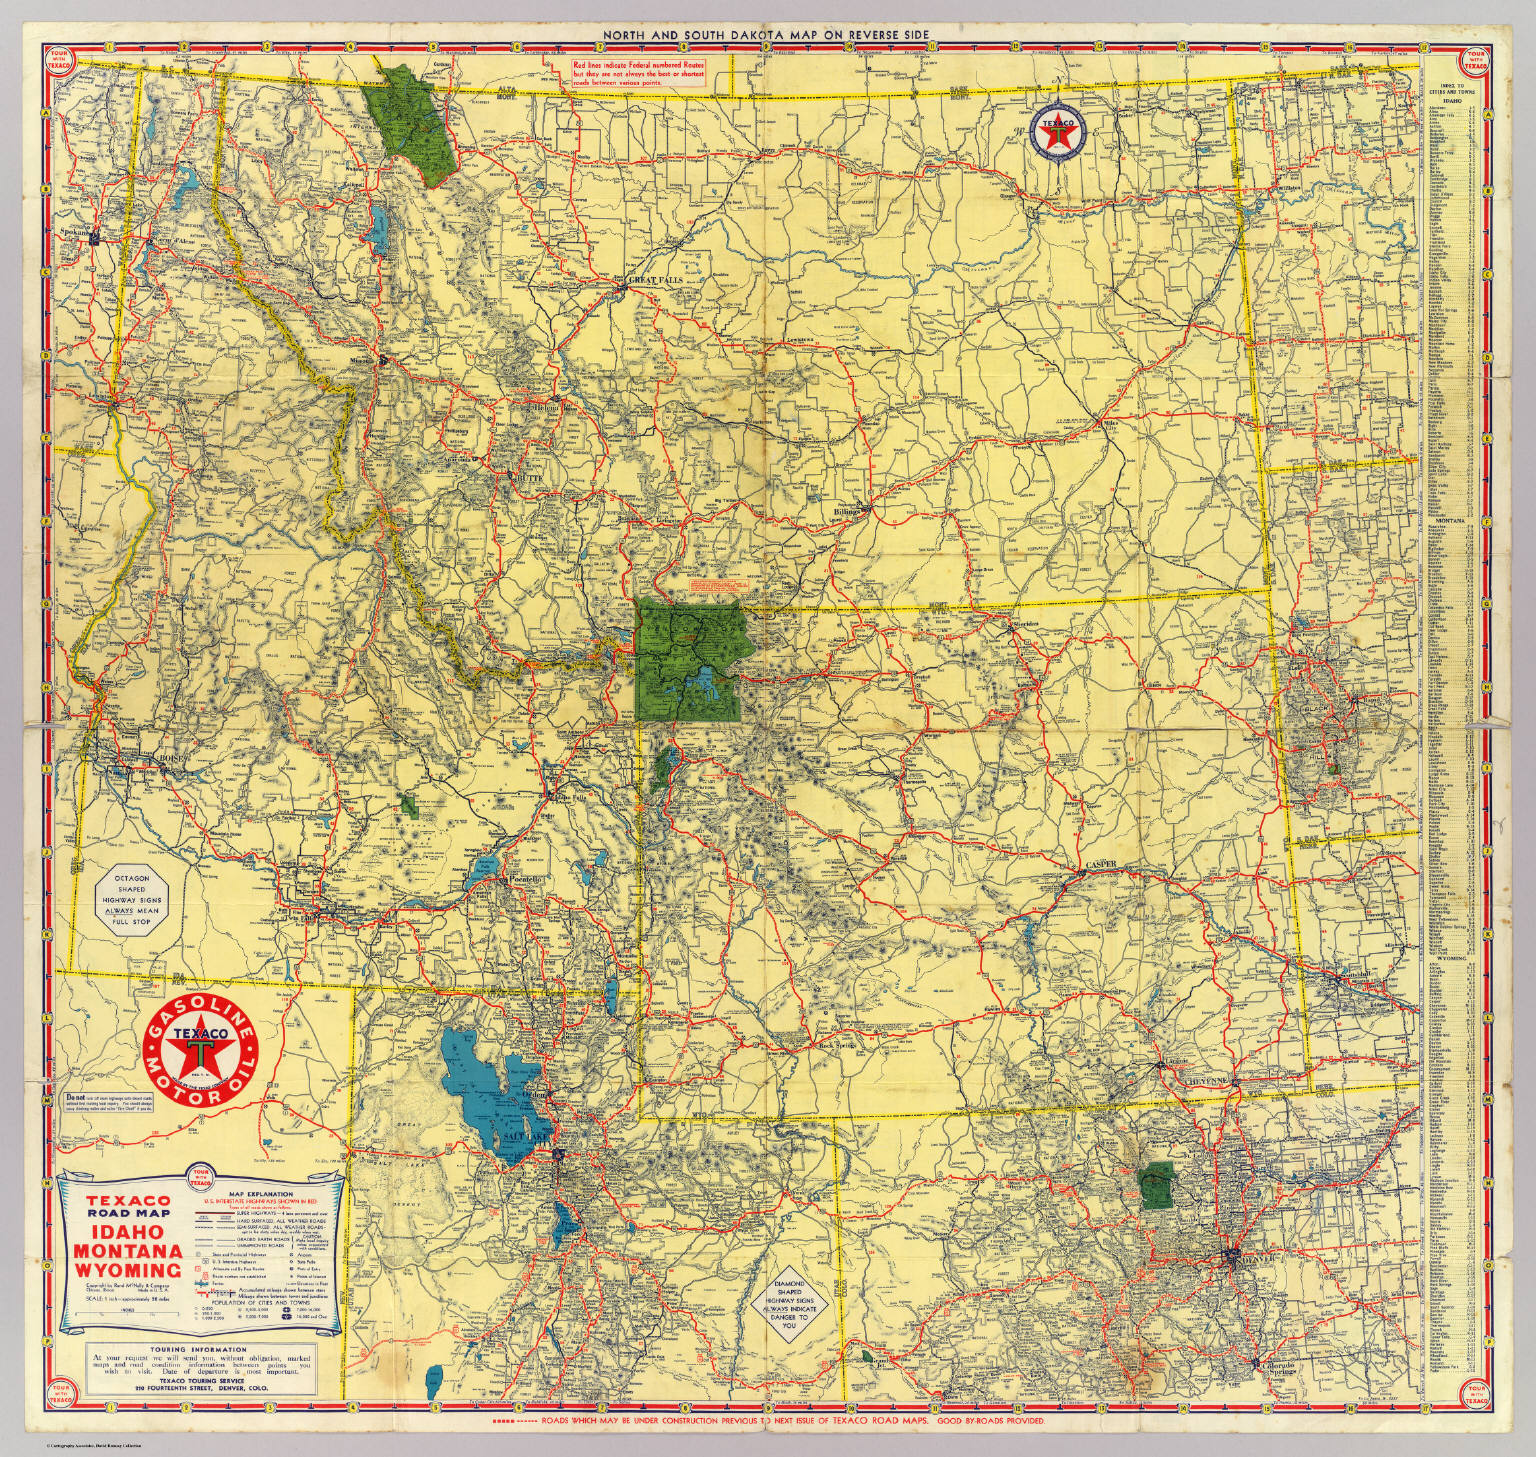 Road map Idaho, Mont., Wyo. - David Rumsey Historical Map Collection